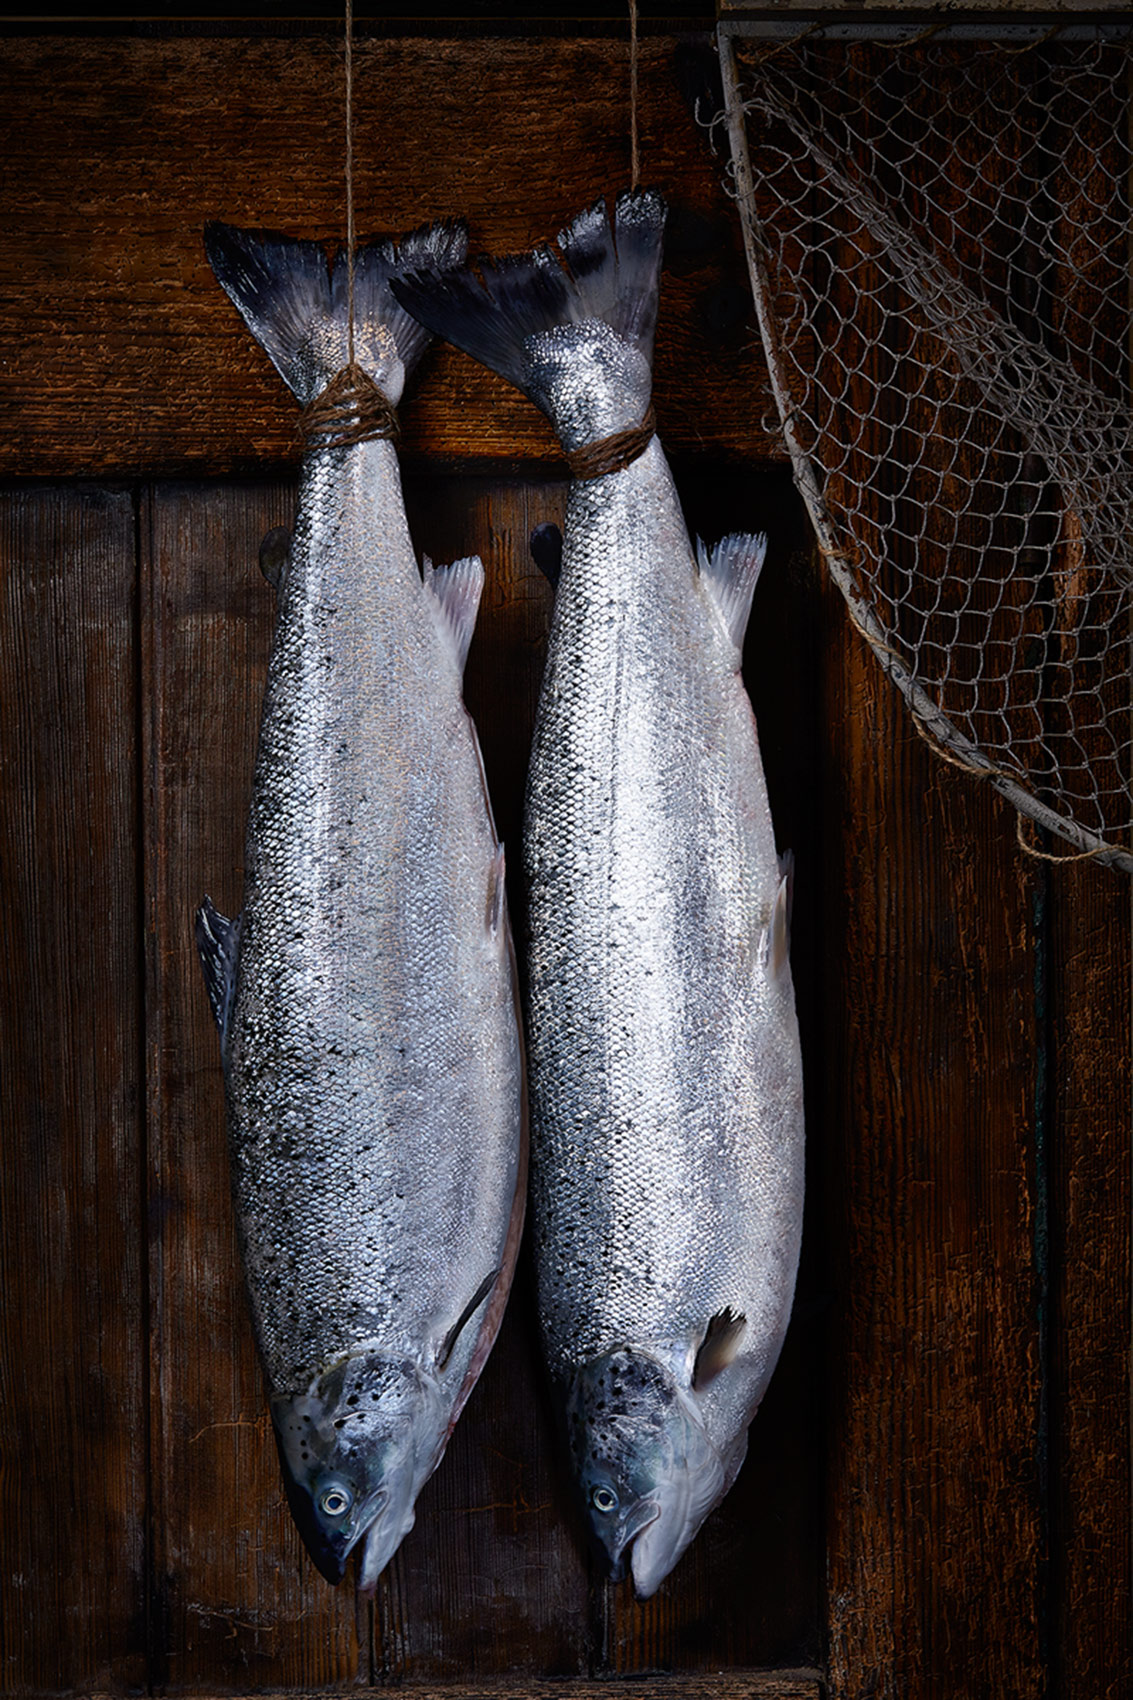 Freshly caught Loch Duart Salmon, Edinburgh food photographer